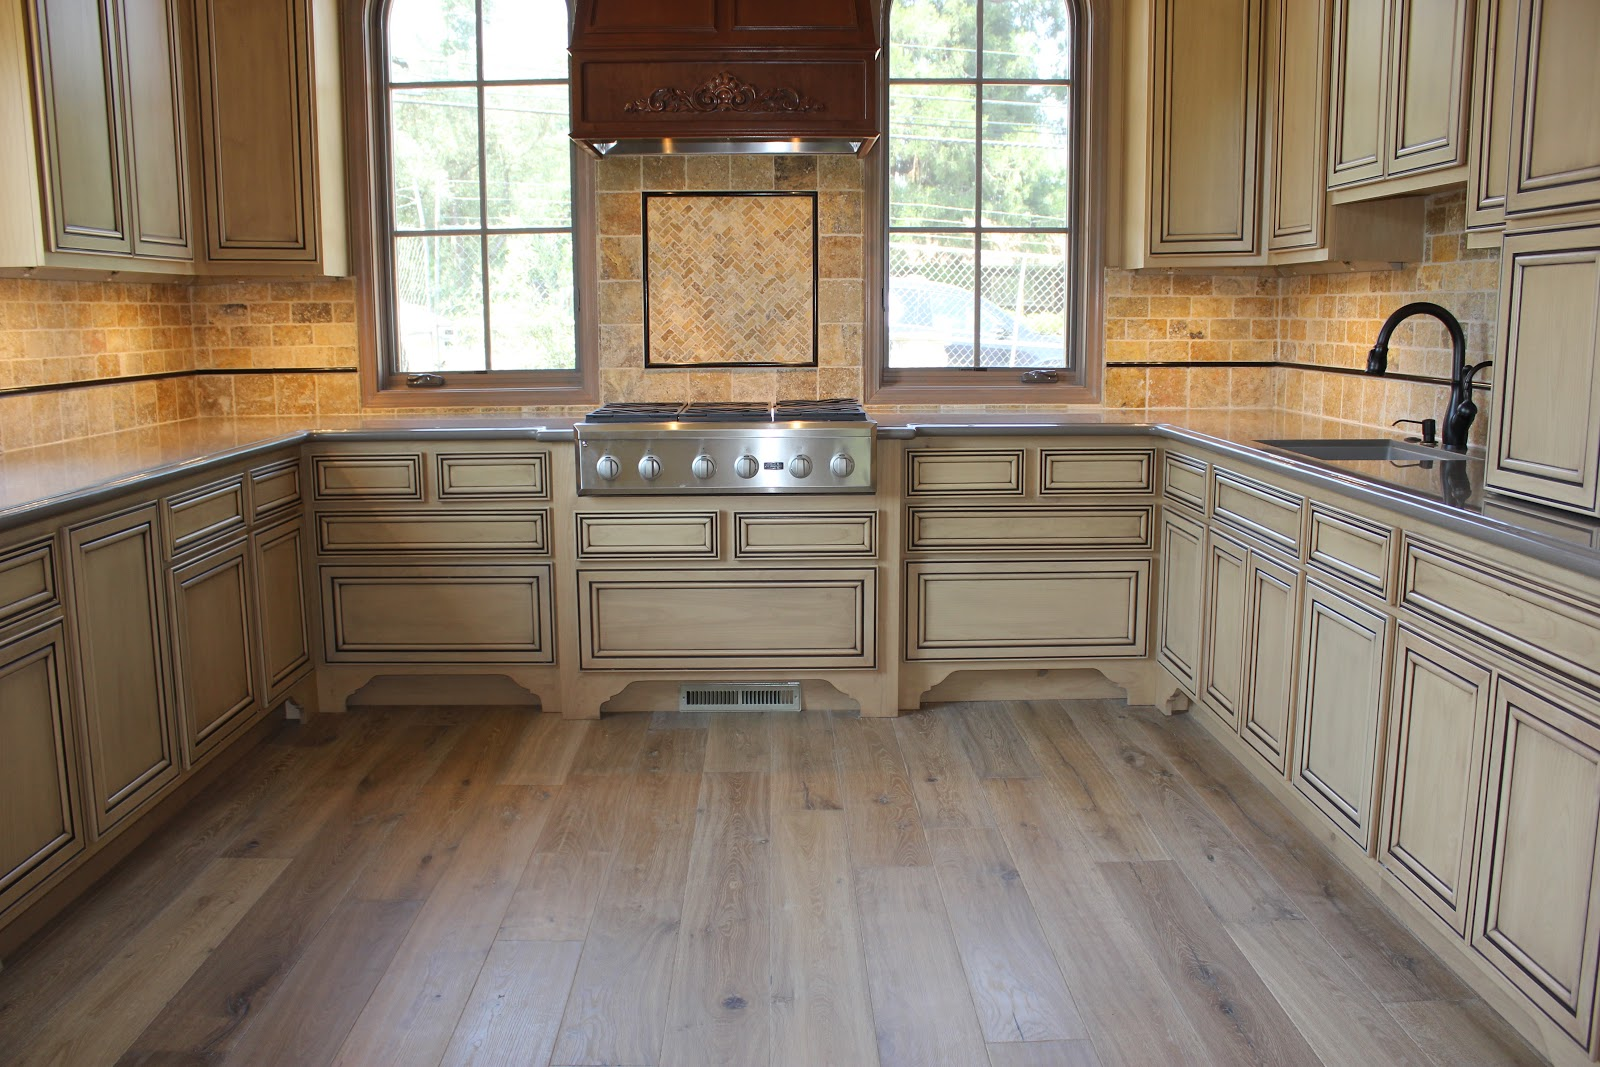 Simas floor and design company hardwood flooring by royal oak for Hardwood floor tile kitchen